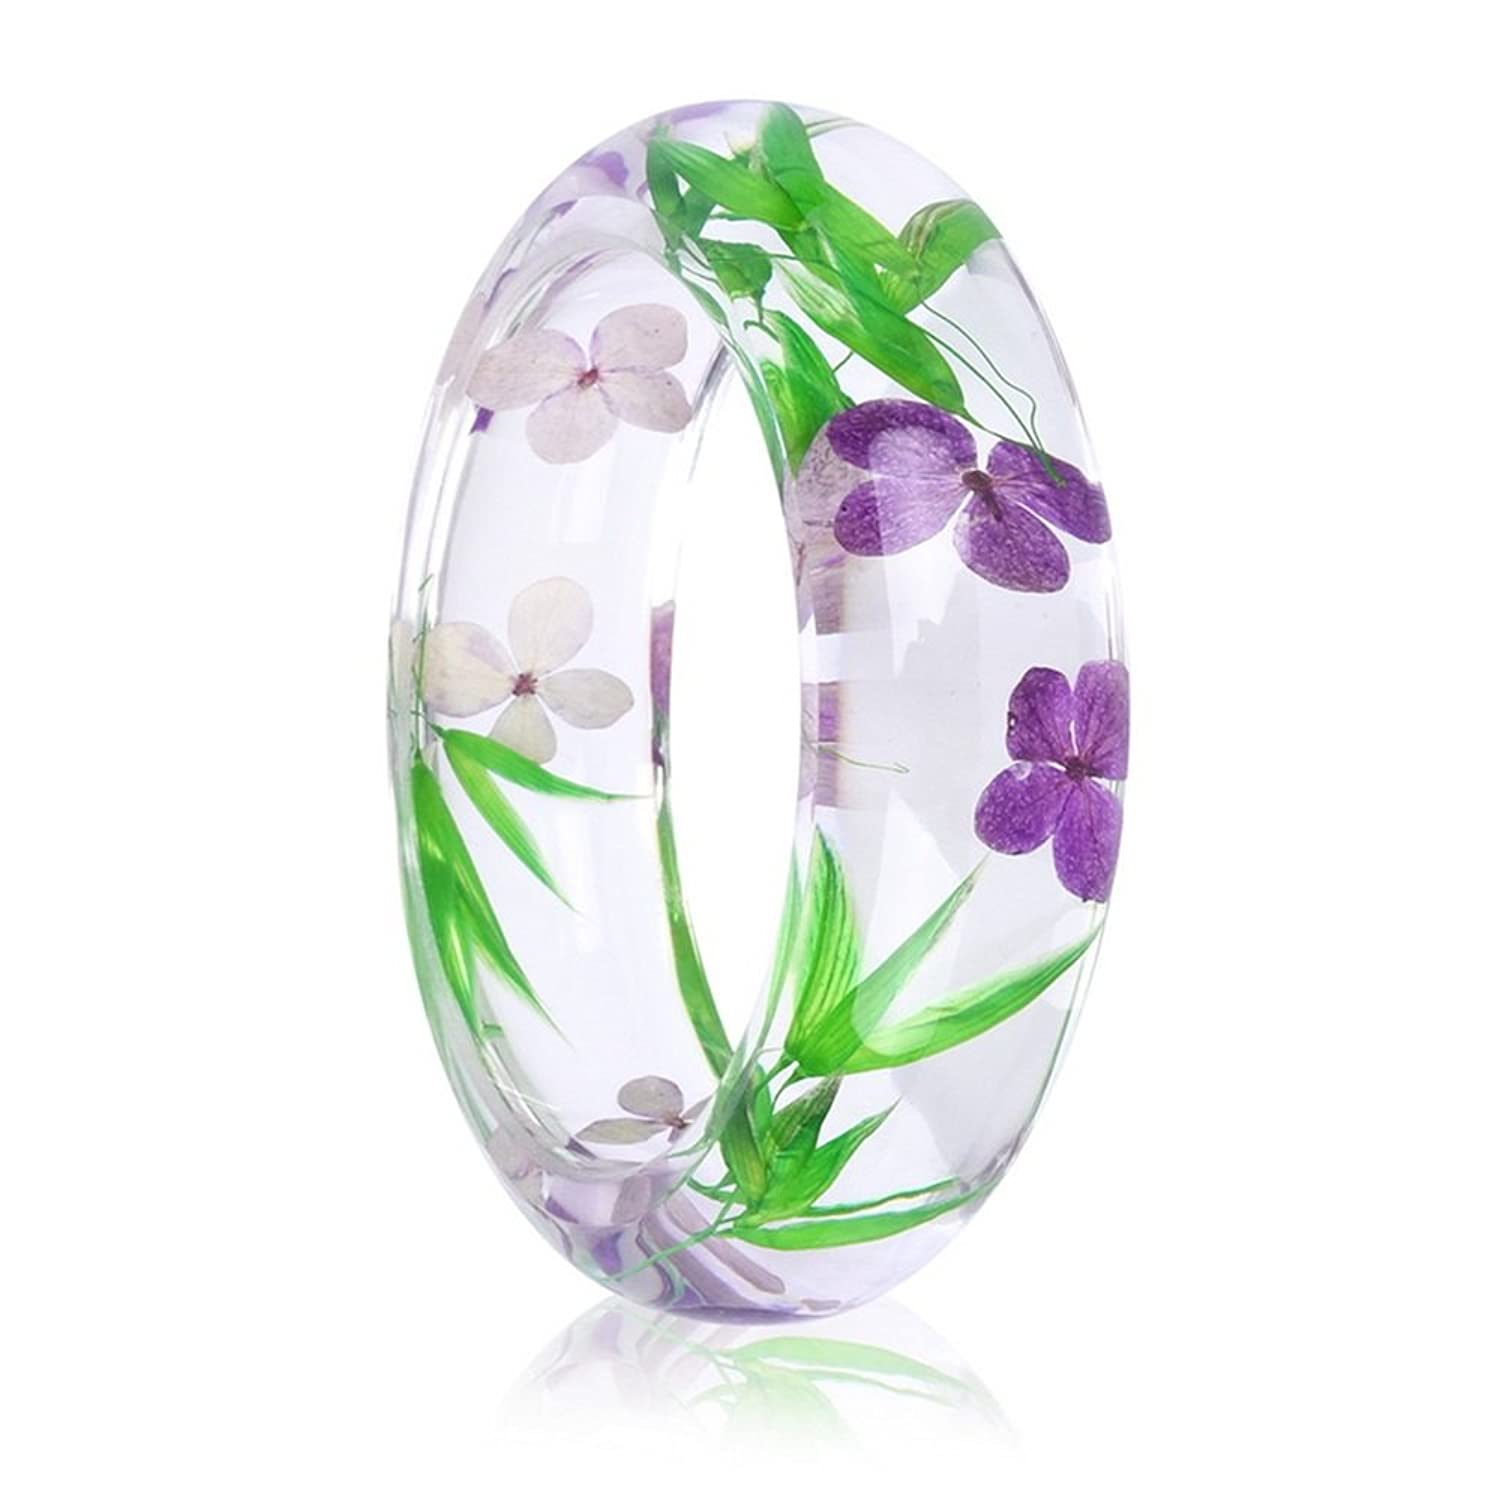 Vintage Style Jewelry, Retro Jewelry Rinhoo DIY Handmade Dry Pressed Flower Resin Bracelet Botanical Garden Transparent Quartz Crystal Bangle Bracelet Women Girls Jewelry $16.99 AT vintagedancer.com